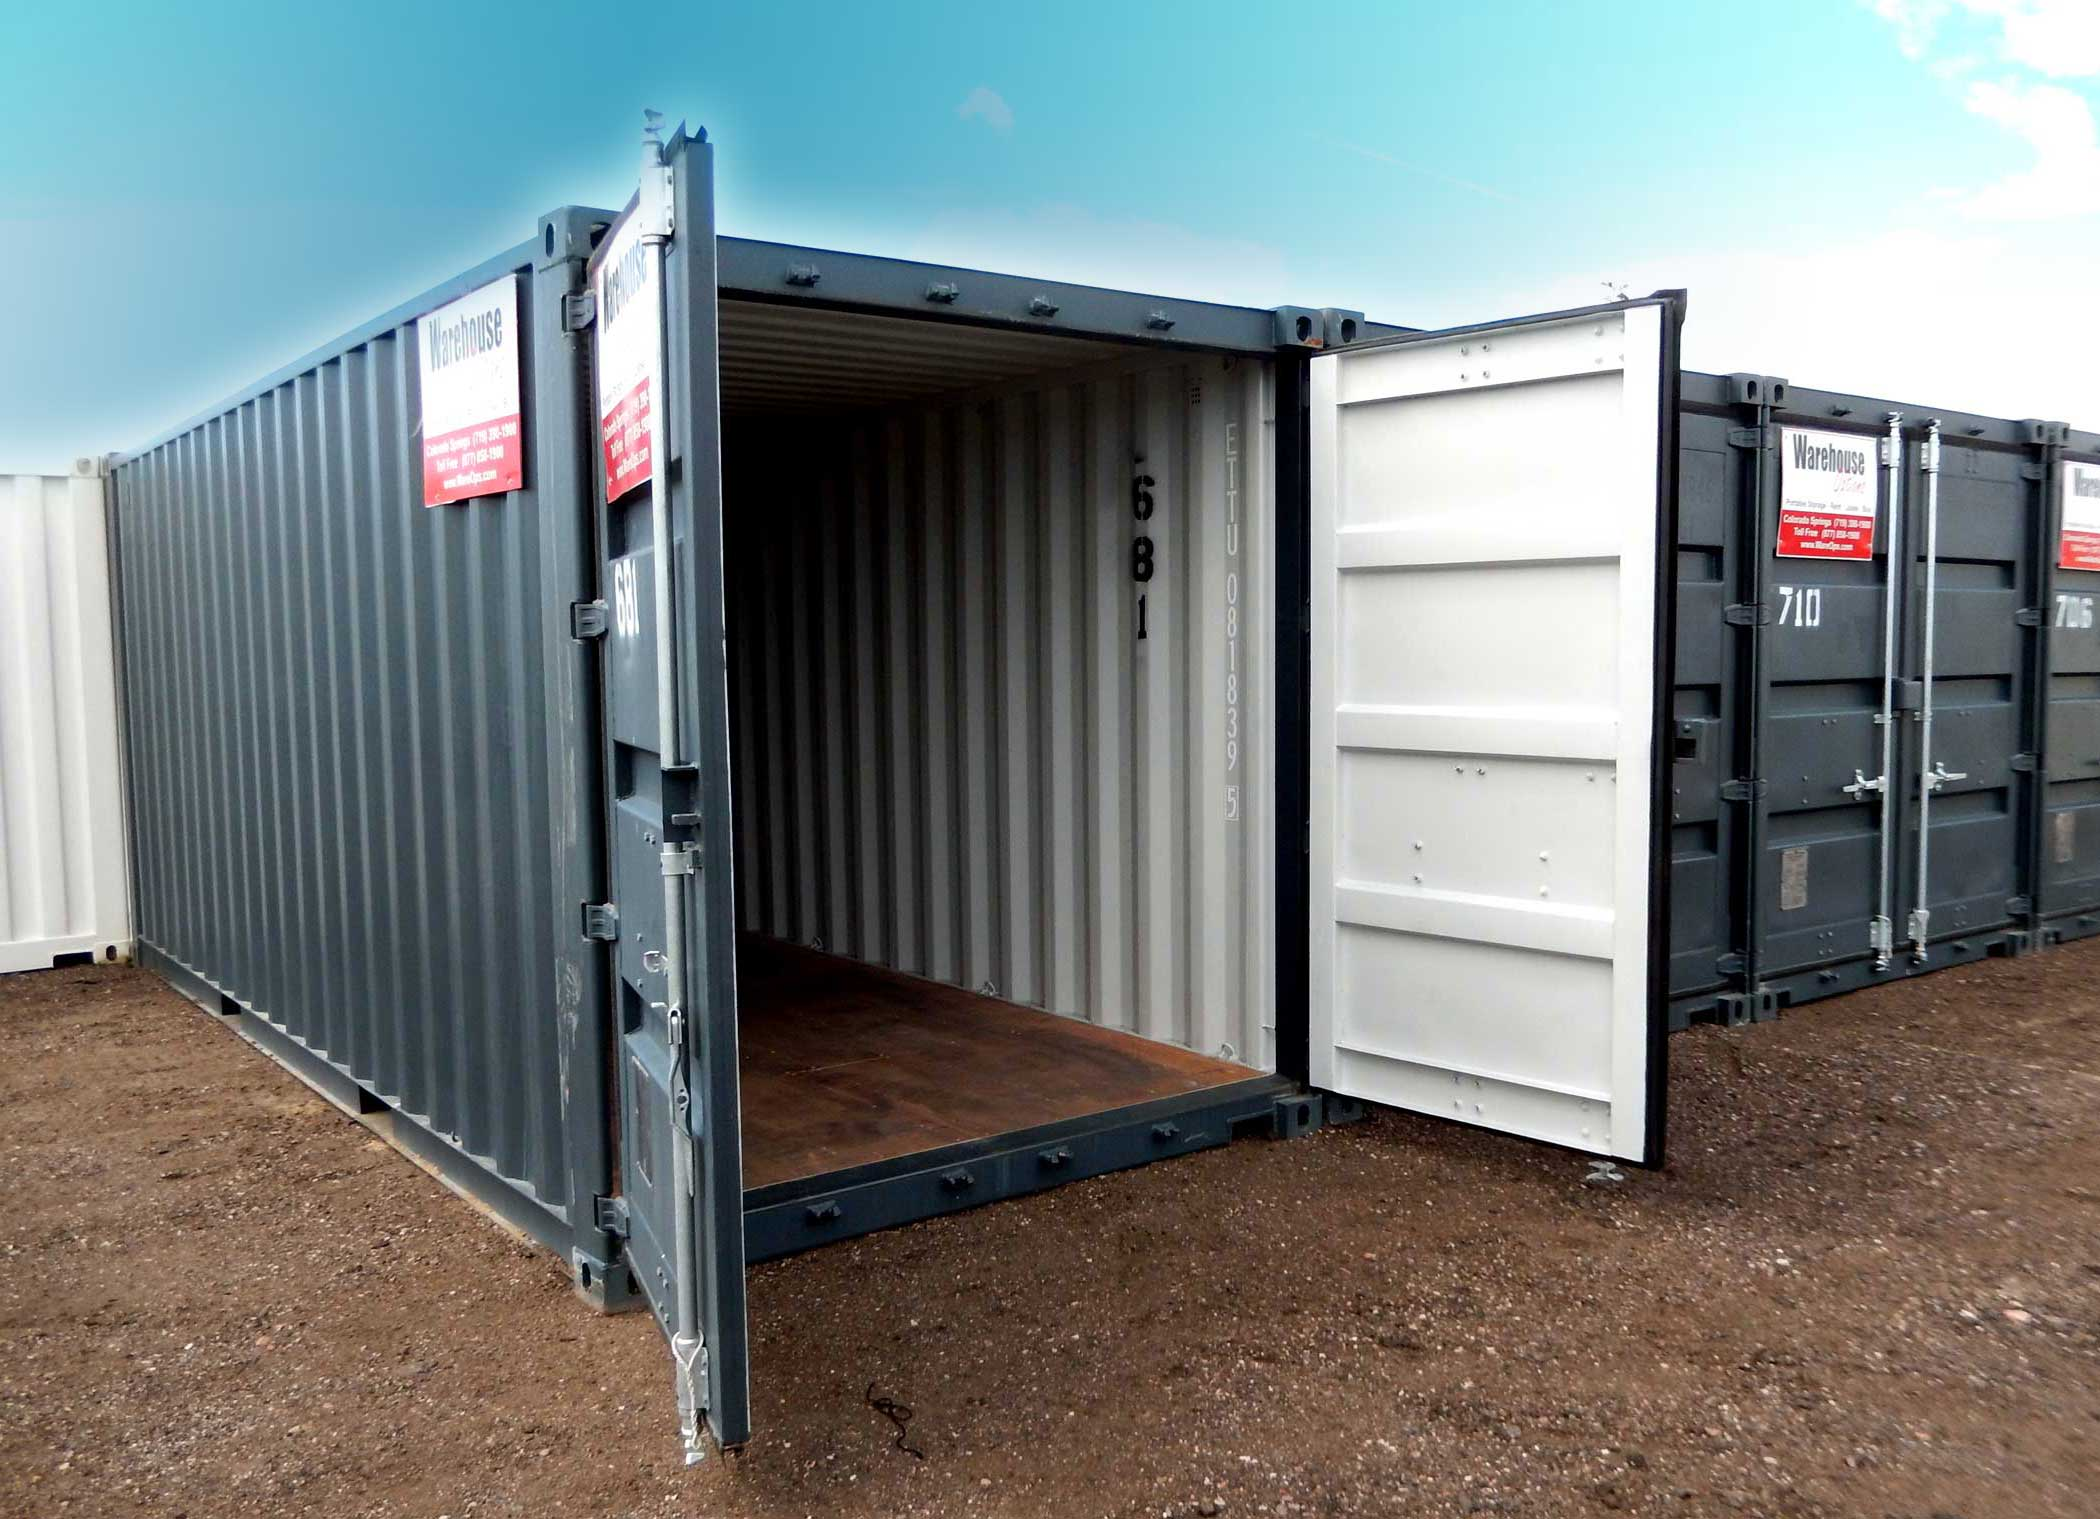 Ground level Containers for Temporary Storage Warehouse Options